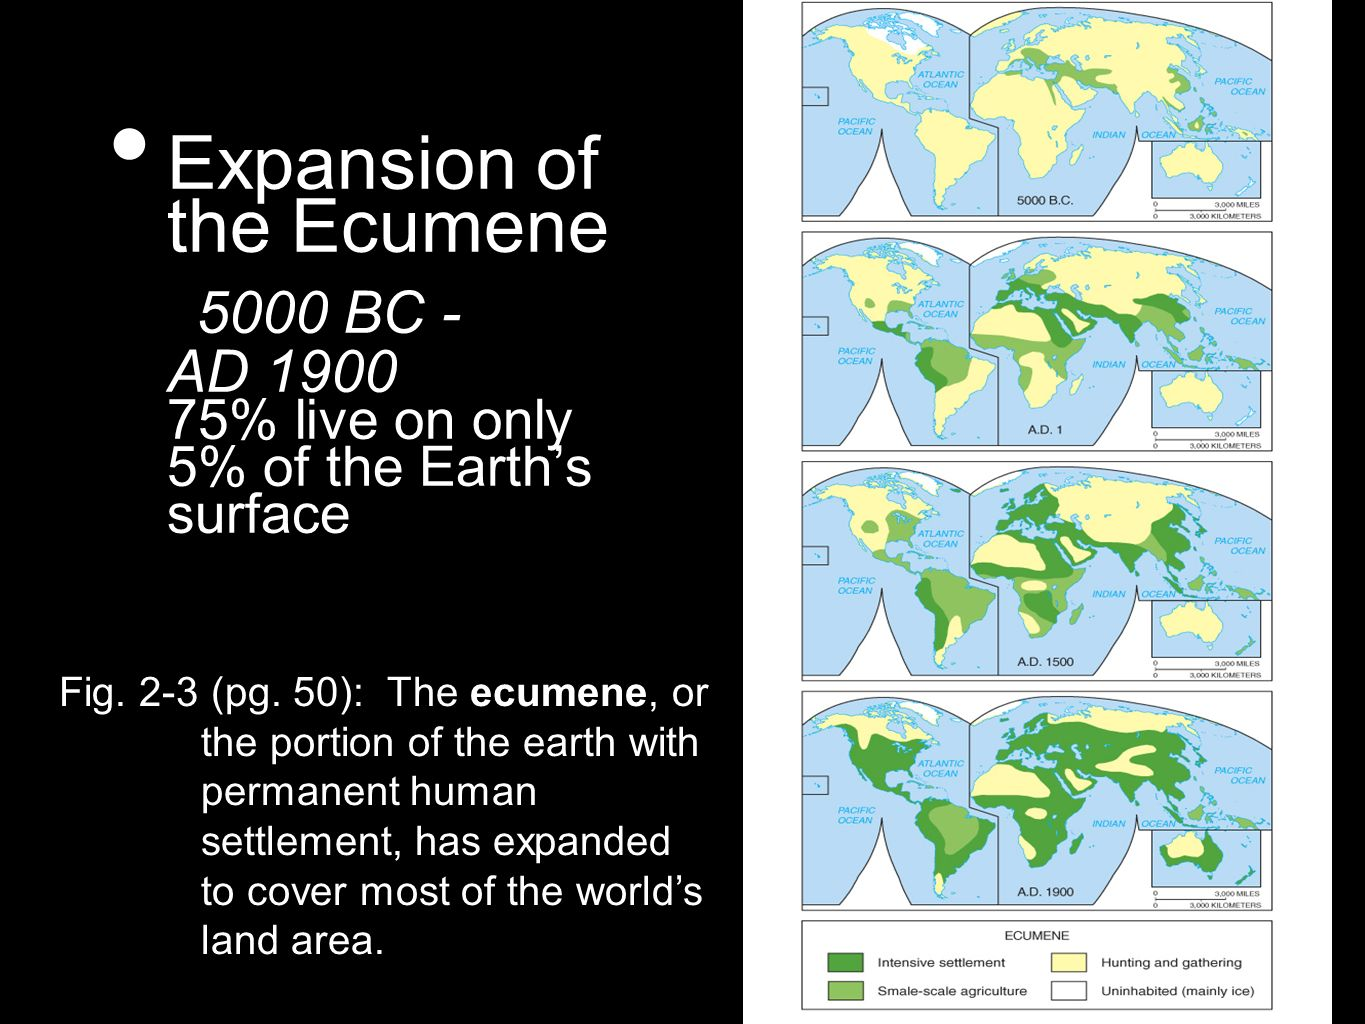 Expansion of the Ecumene 5000 BC - AD 1900 75% live on only 5% of the Earths surface Fig. 2-3 (pg. 50): The ecumene, or the portion of the earth with